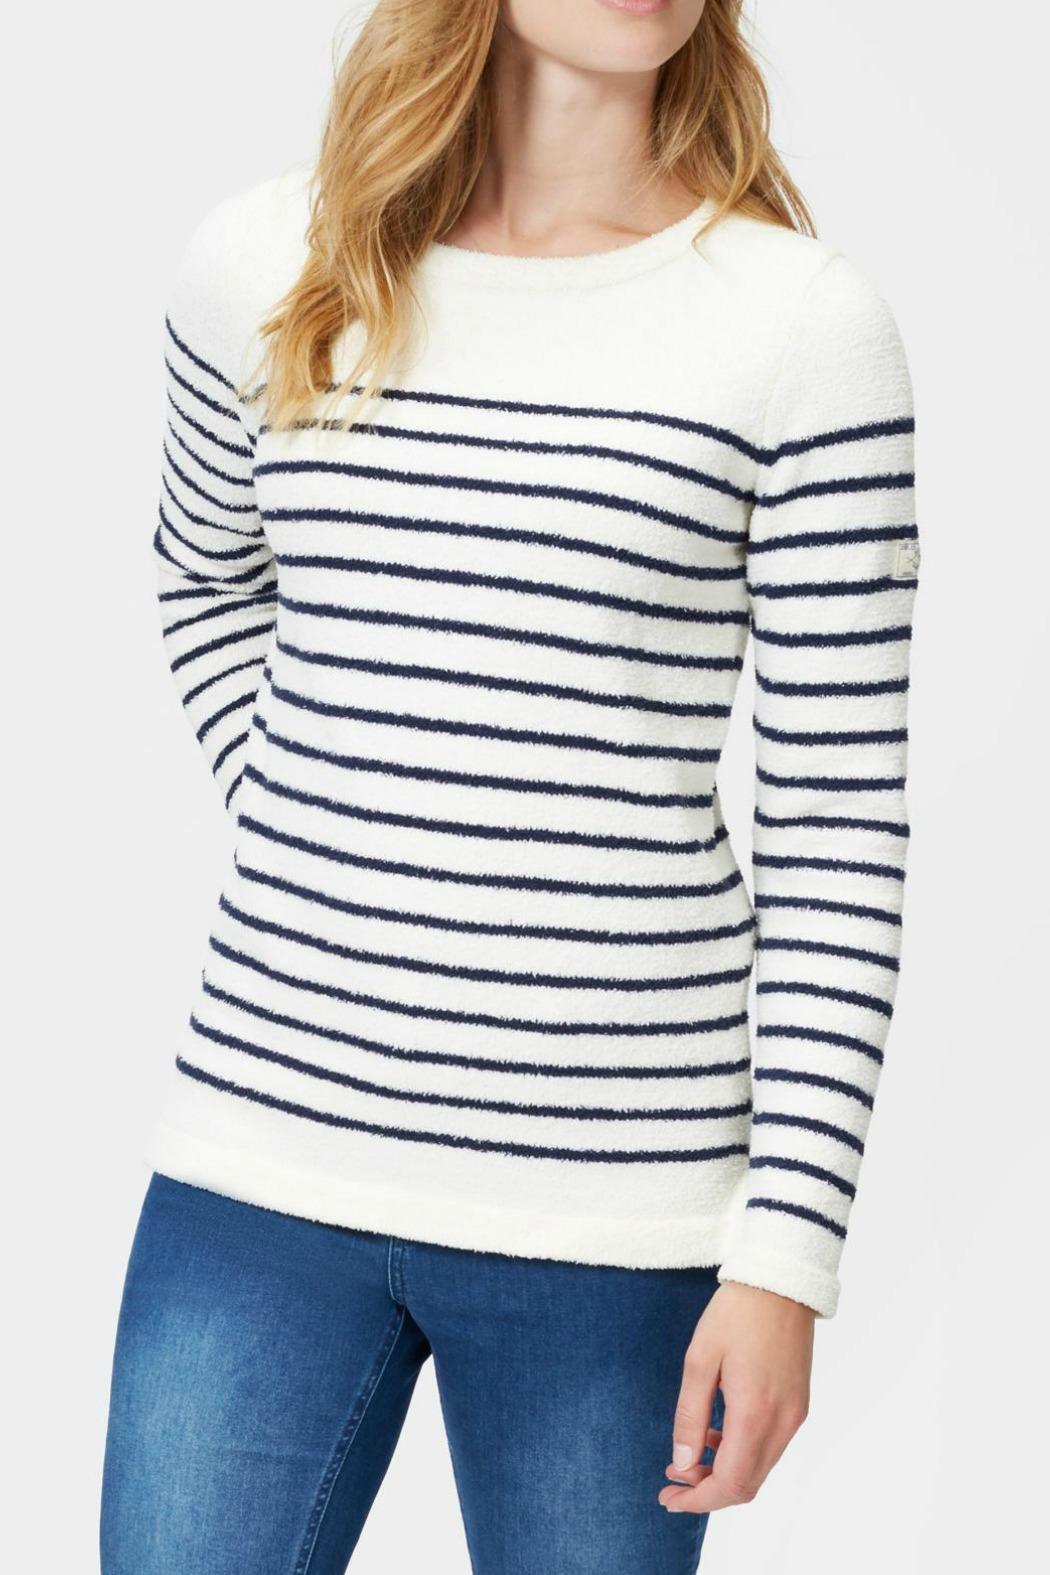 Joules Seaham Chenille Sweater From Massachusetts By